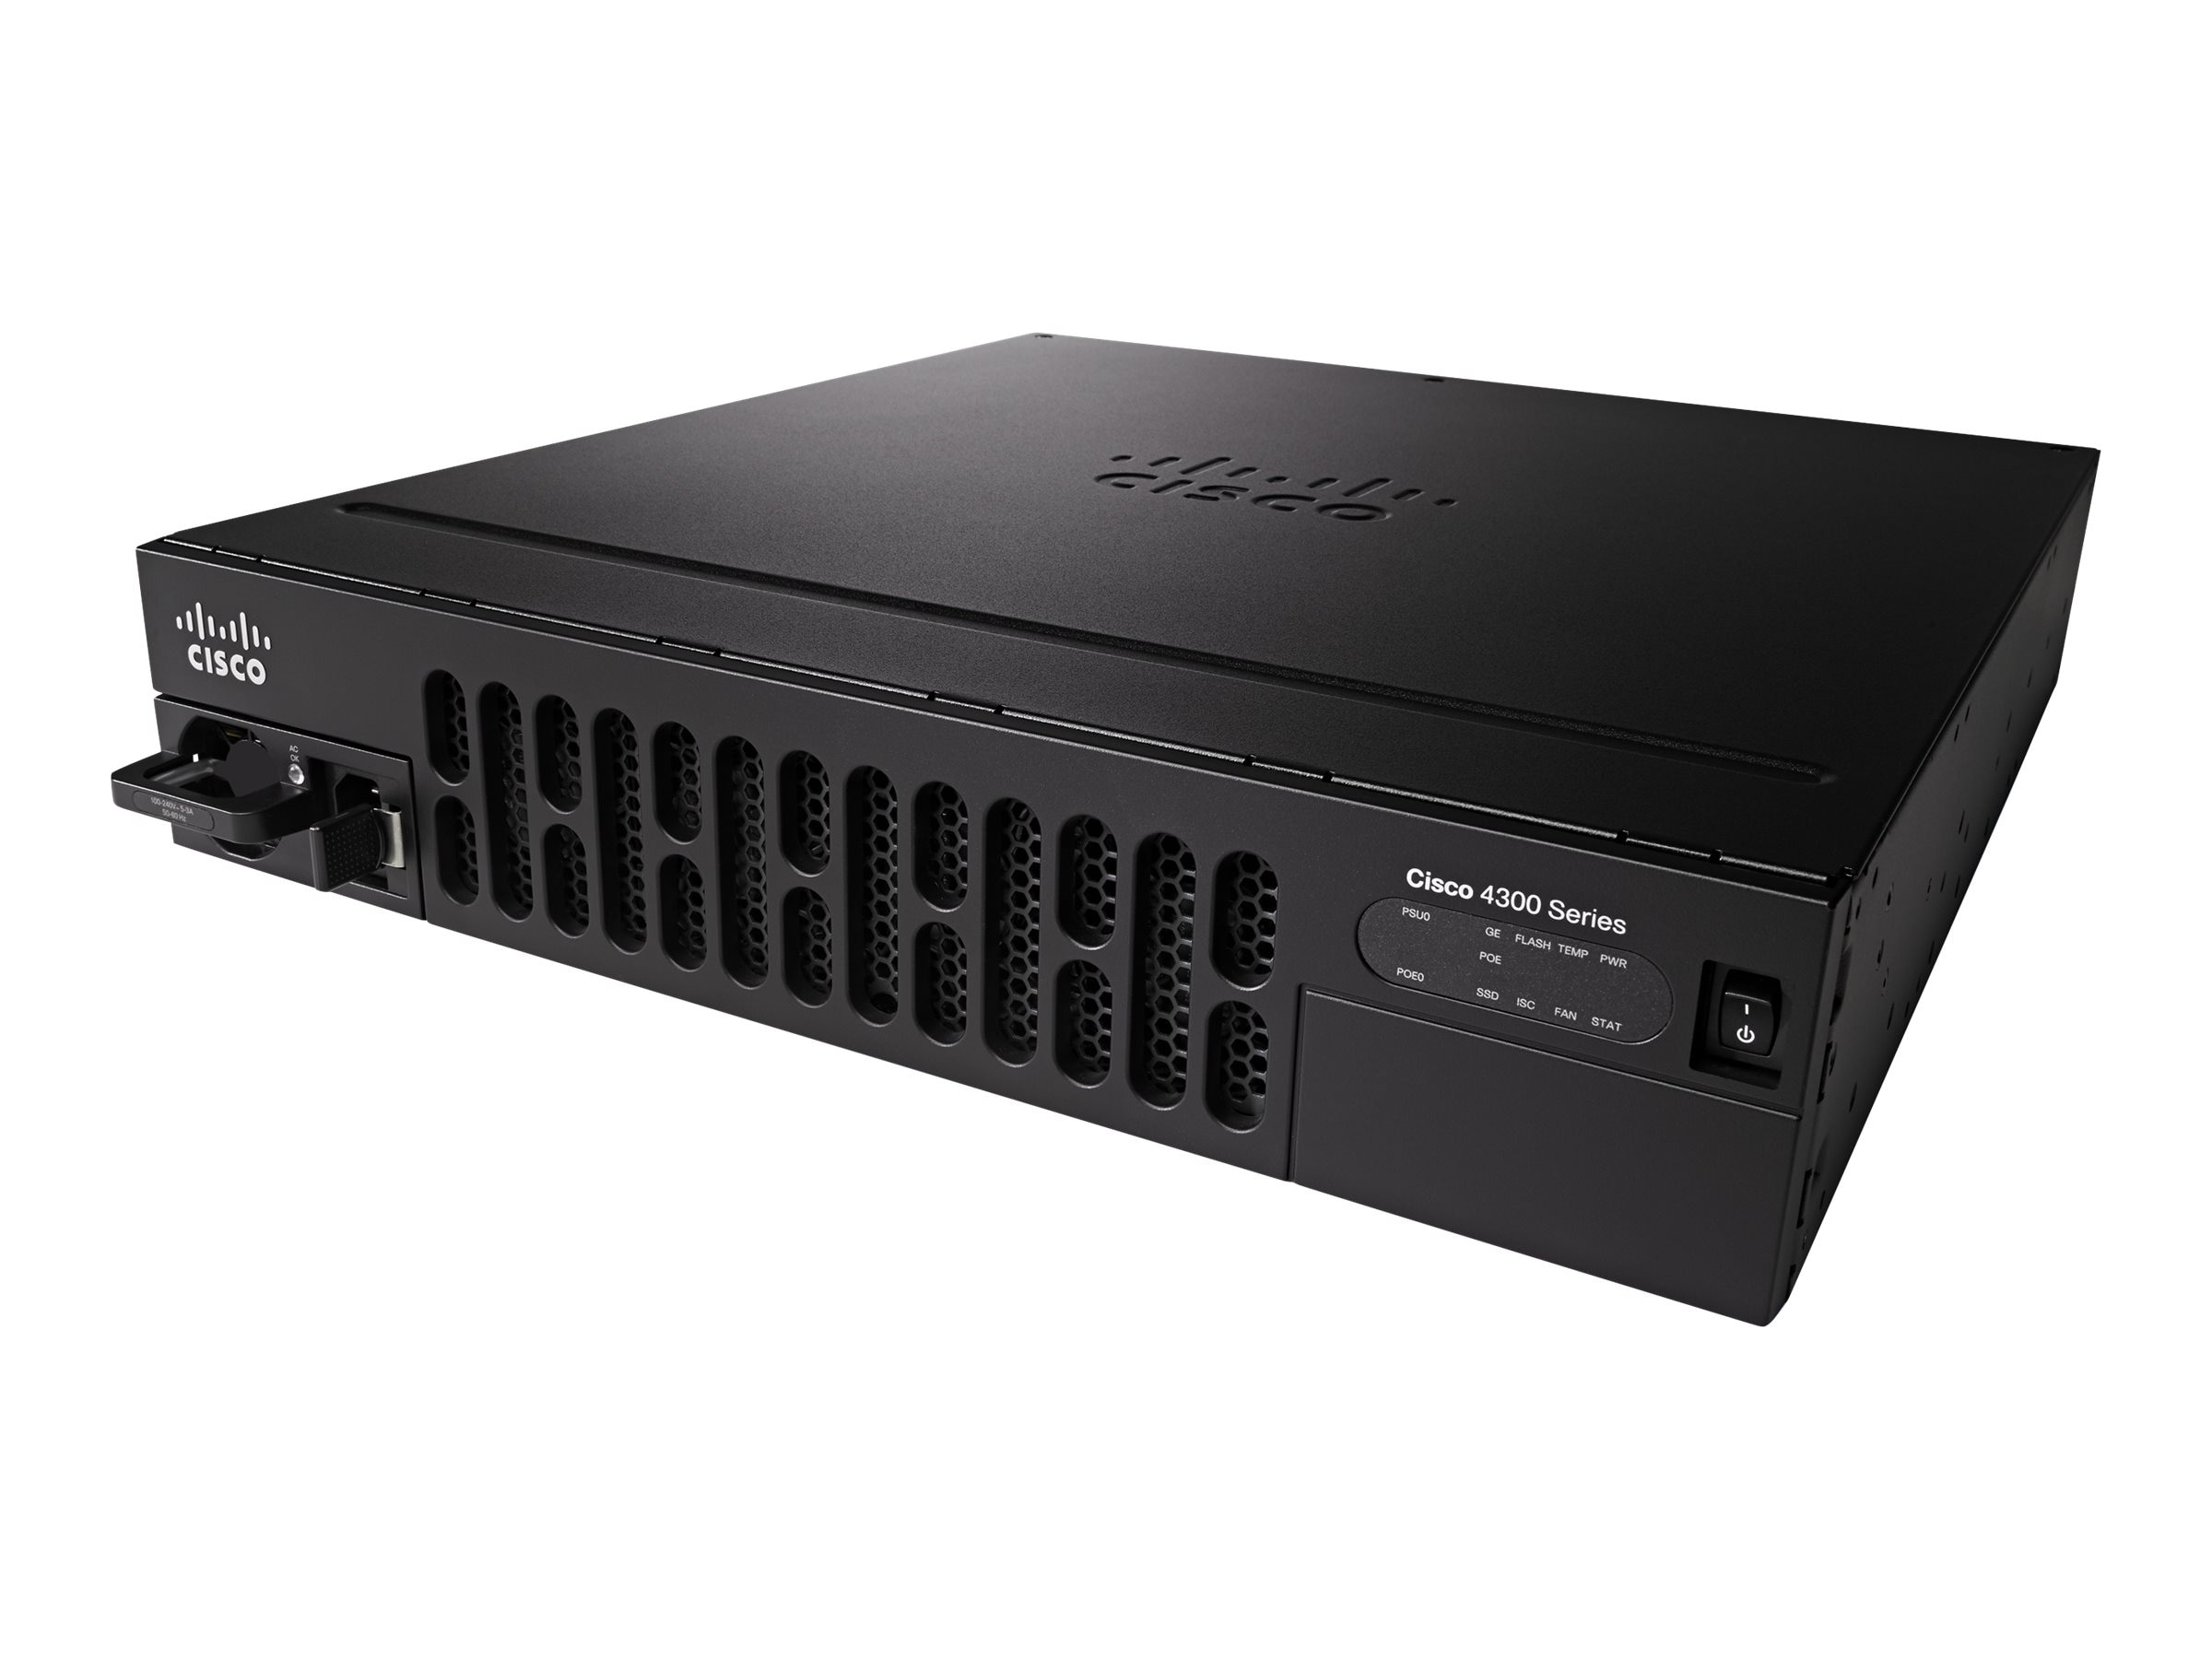 Cisco SR 4351 with 3 onboard GE, 3 NIM slots, 1 ISC slot, 2 SM slots, 4 GB Flash Memory default, 4 GB DRAM